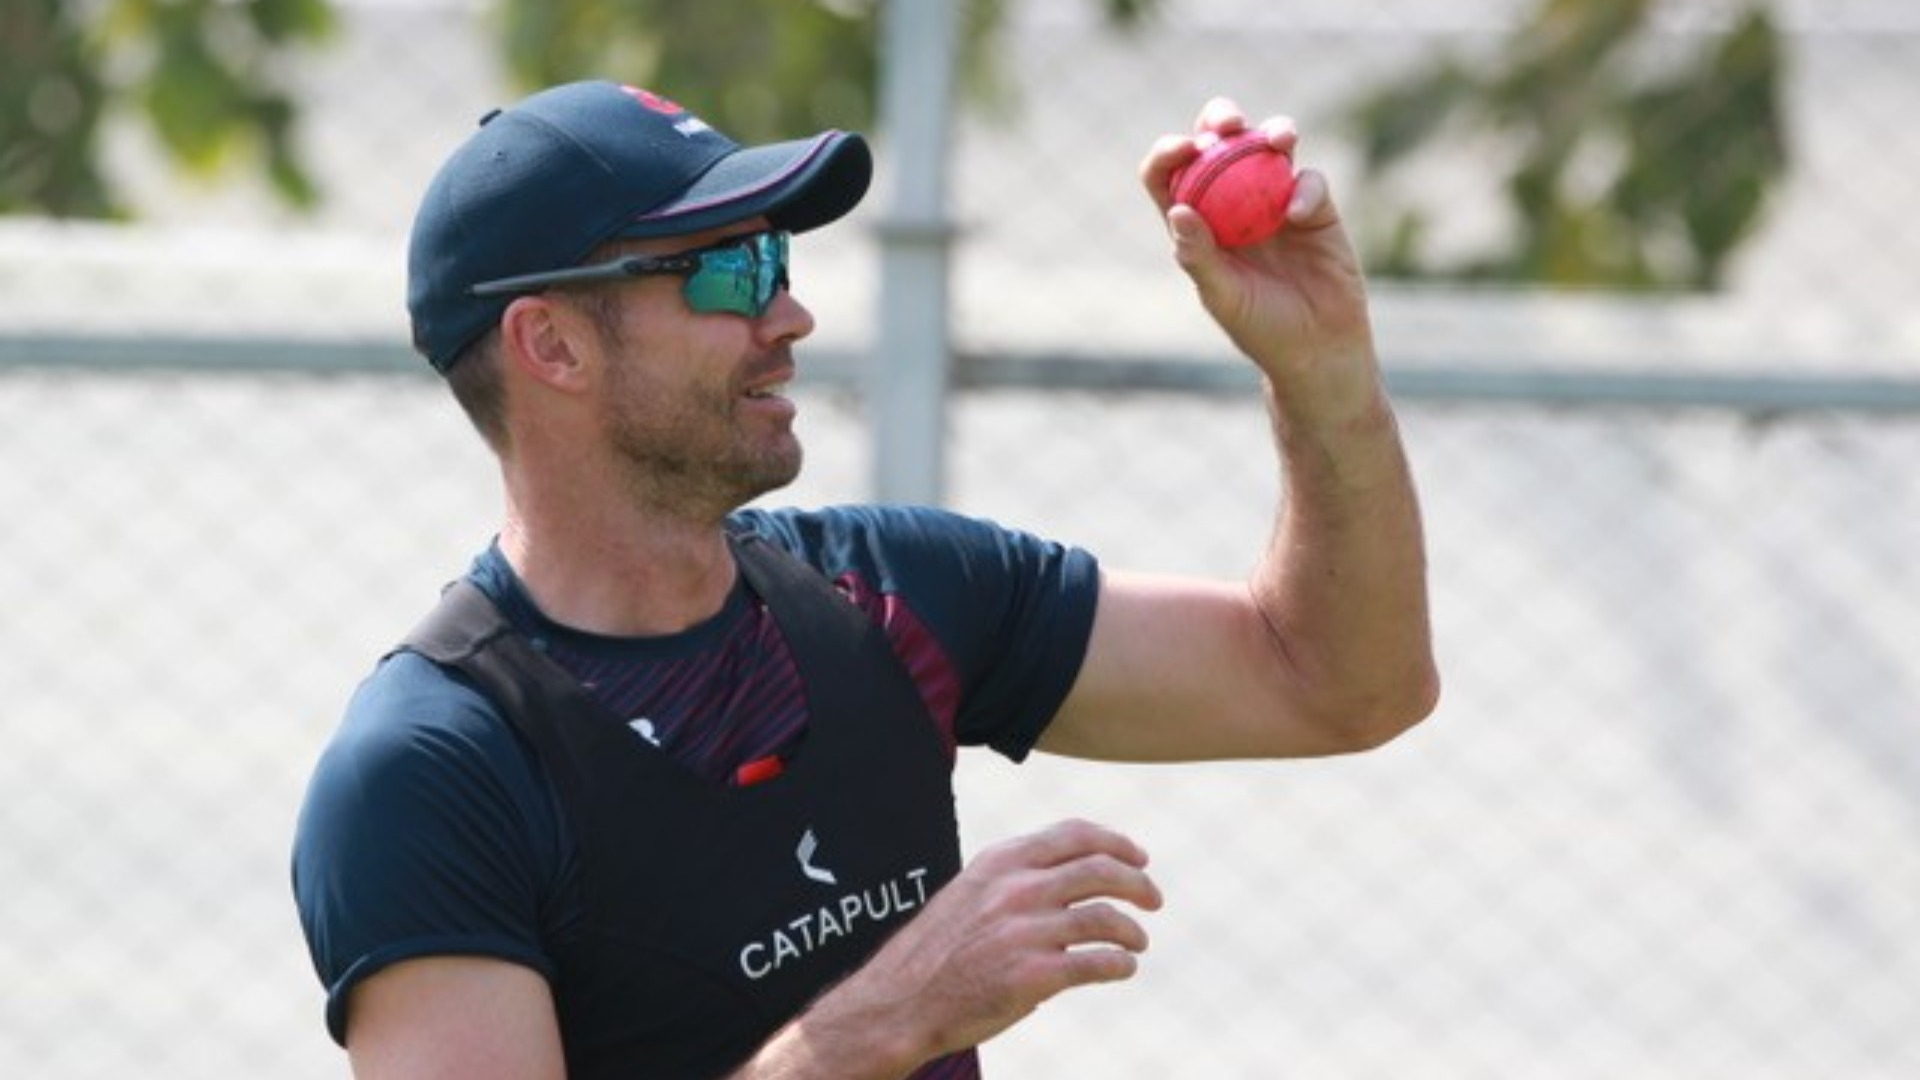 India will be wary of facing a returning James Anderson, but Ishant Sharma will also be hoping to do damage with the pink ball.